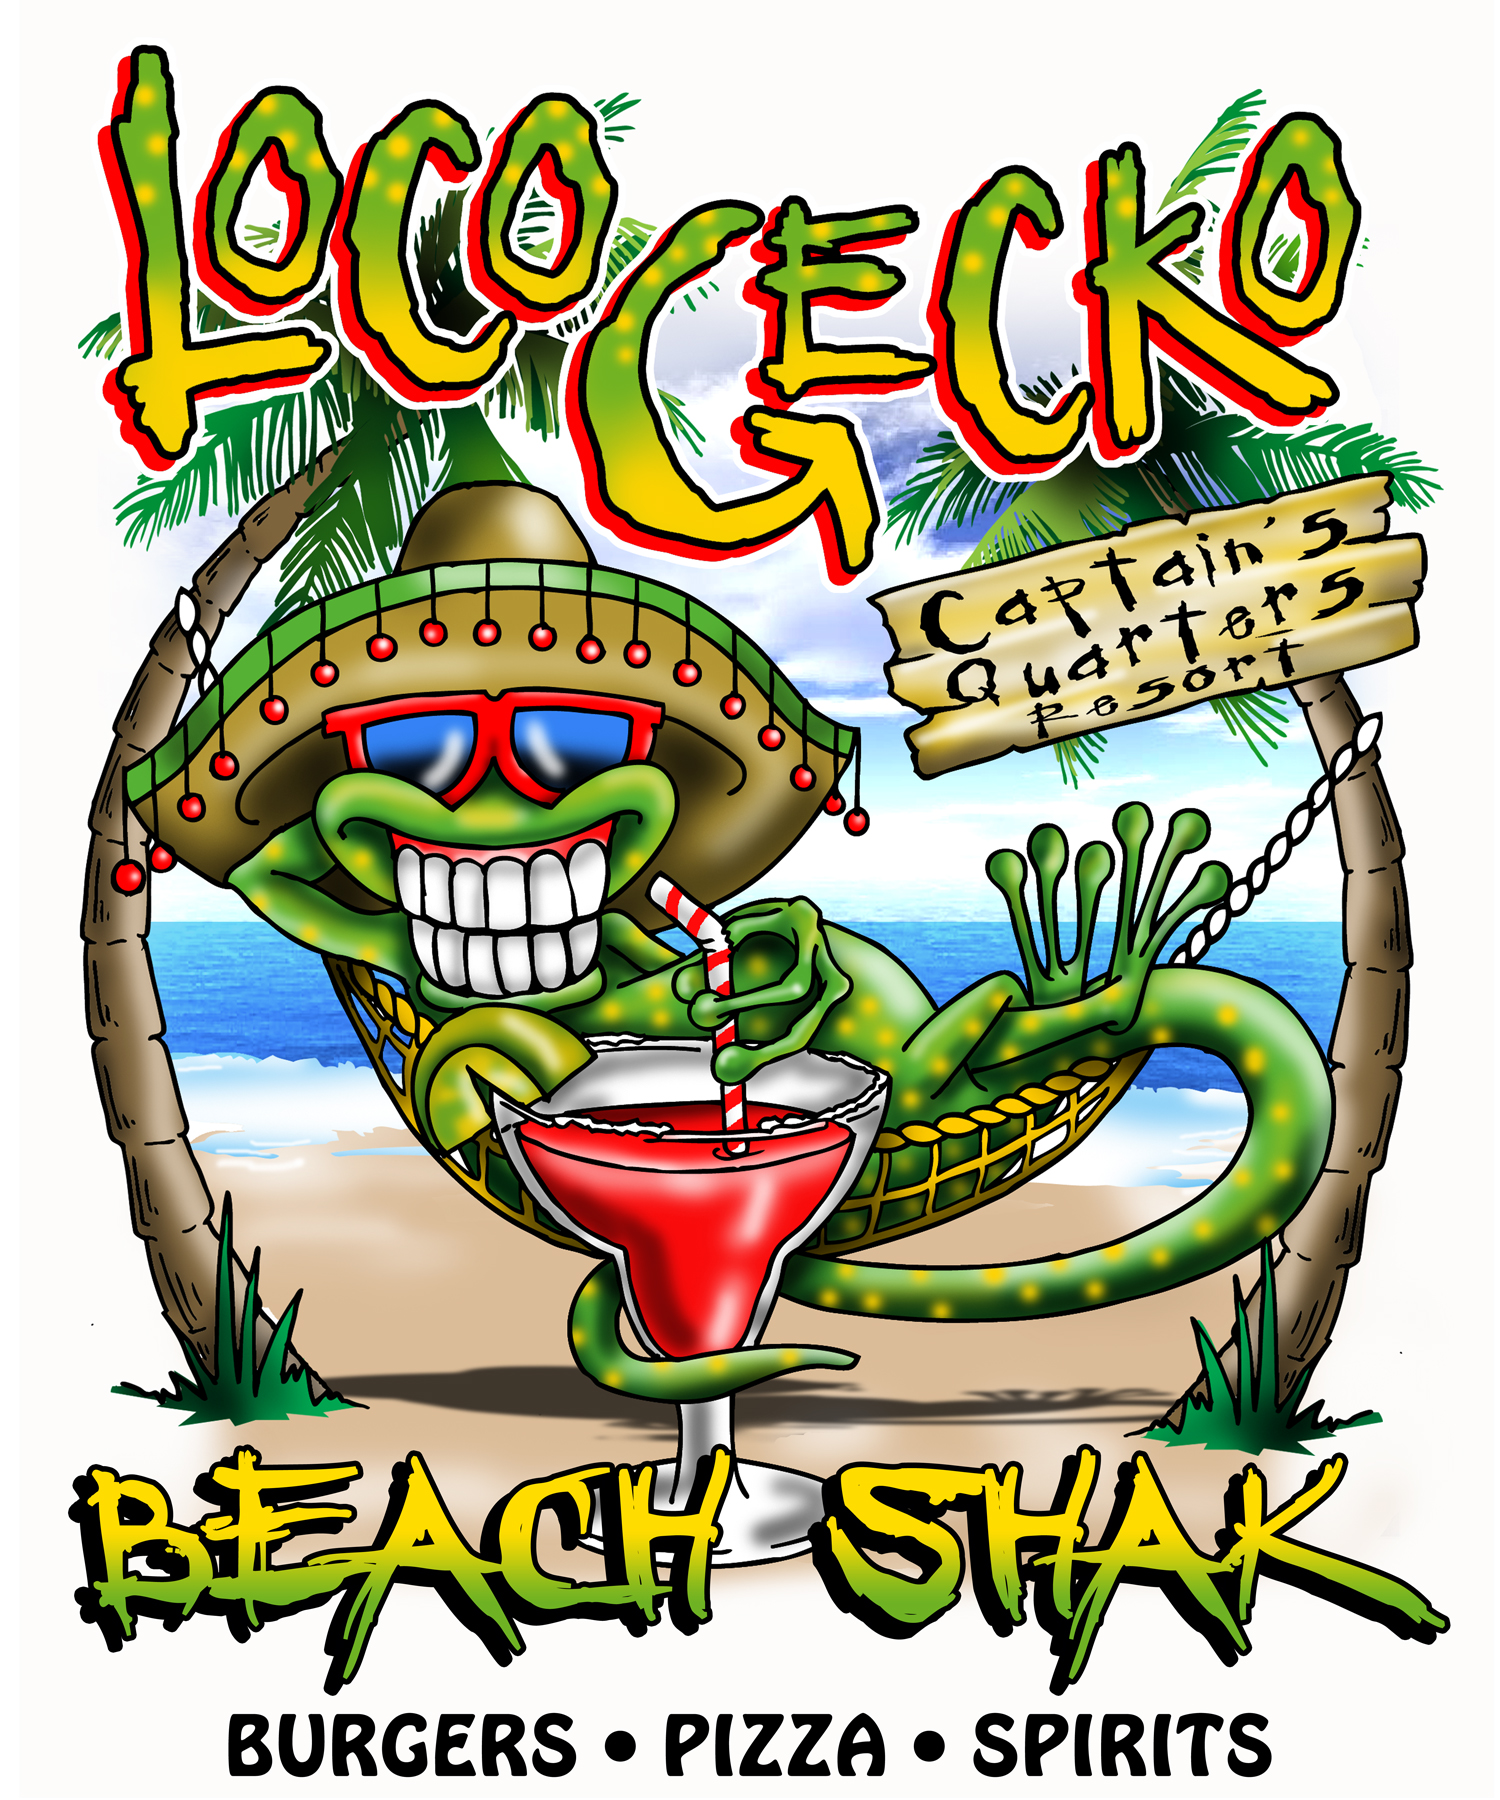 Loco Gecko - Captains Quarters Location